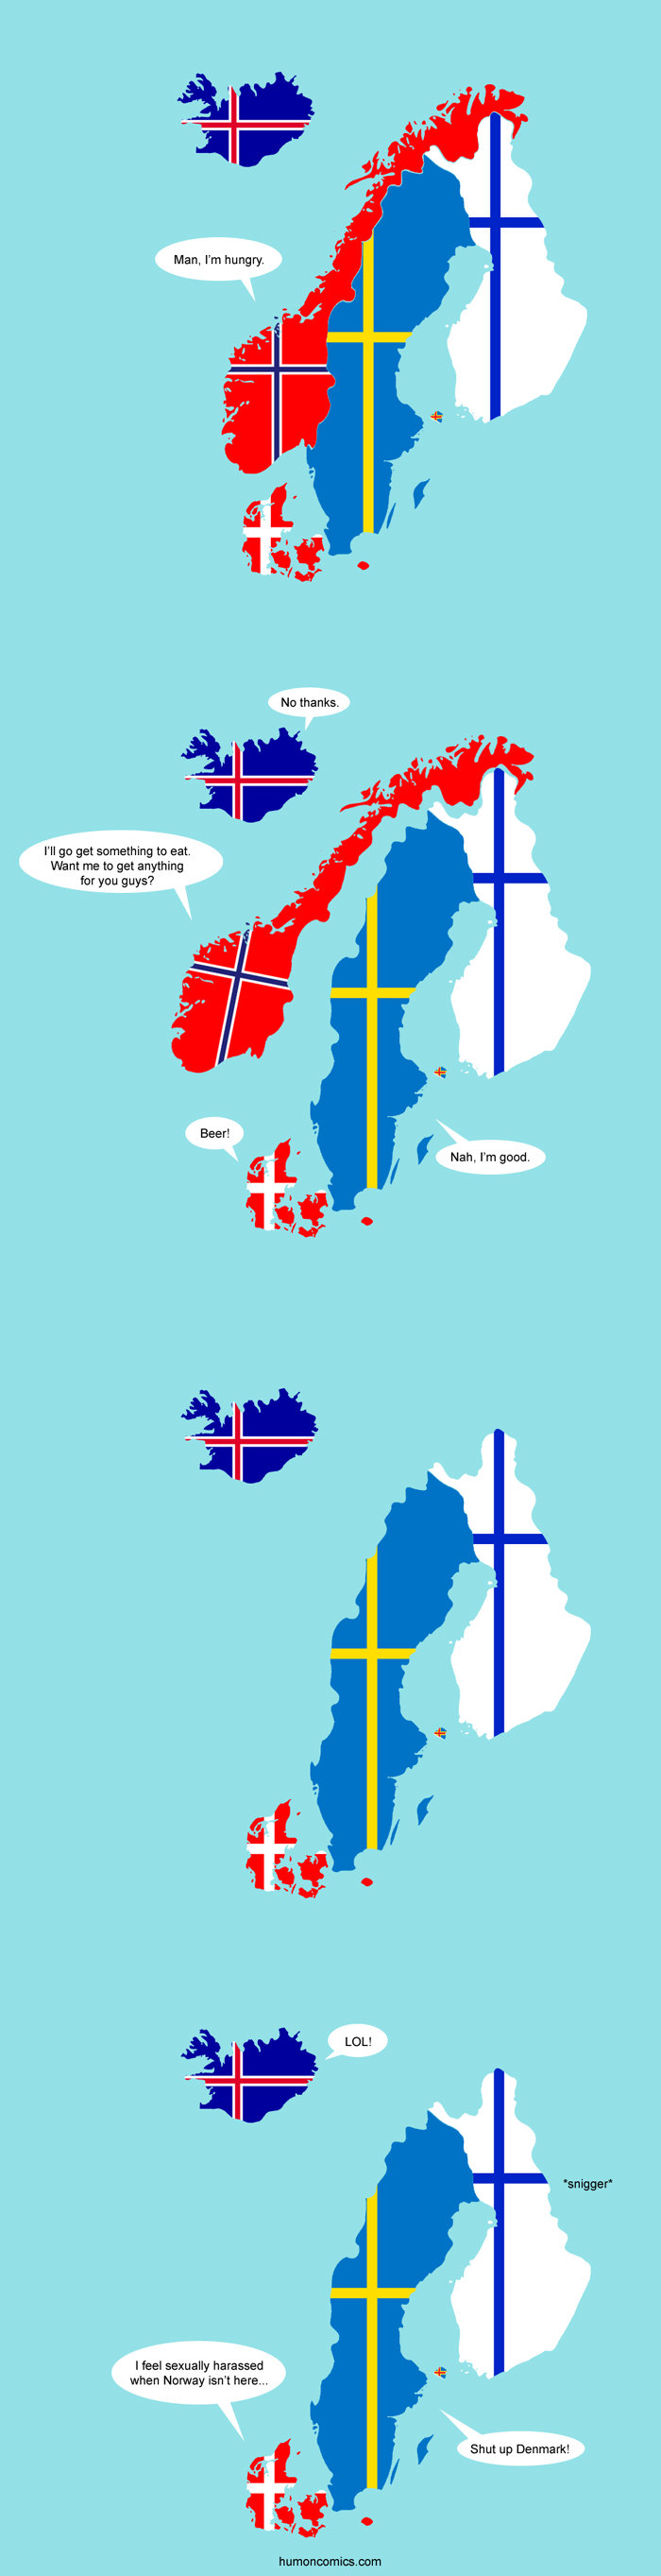 How uncomfortable.. . Man, I' m hungry. l I] get something to eat. a t me to get anything for you guys? mitts.. Hold up... there is a post, which involves Denmark, and nobody is talking danish yet? Not even a Bubber reference? Come on people!